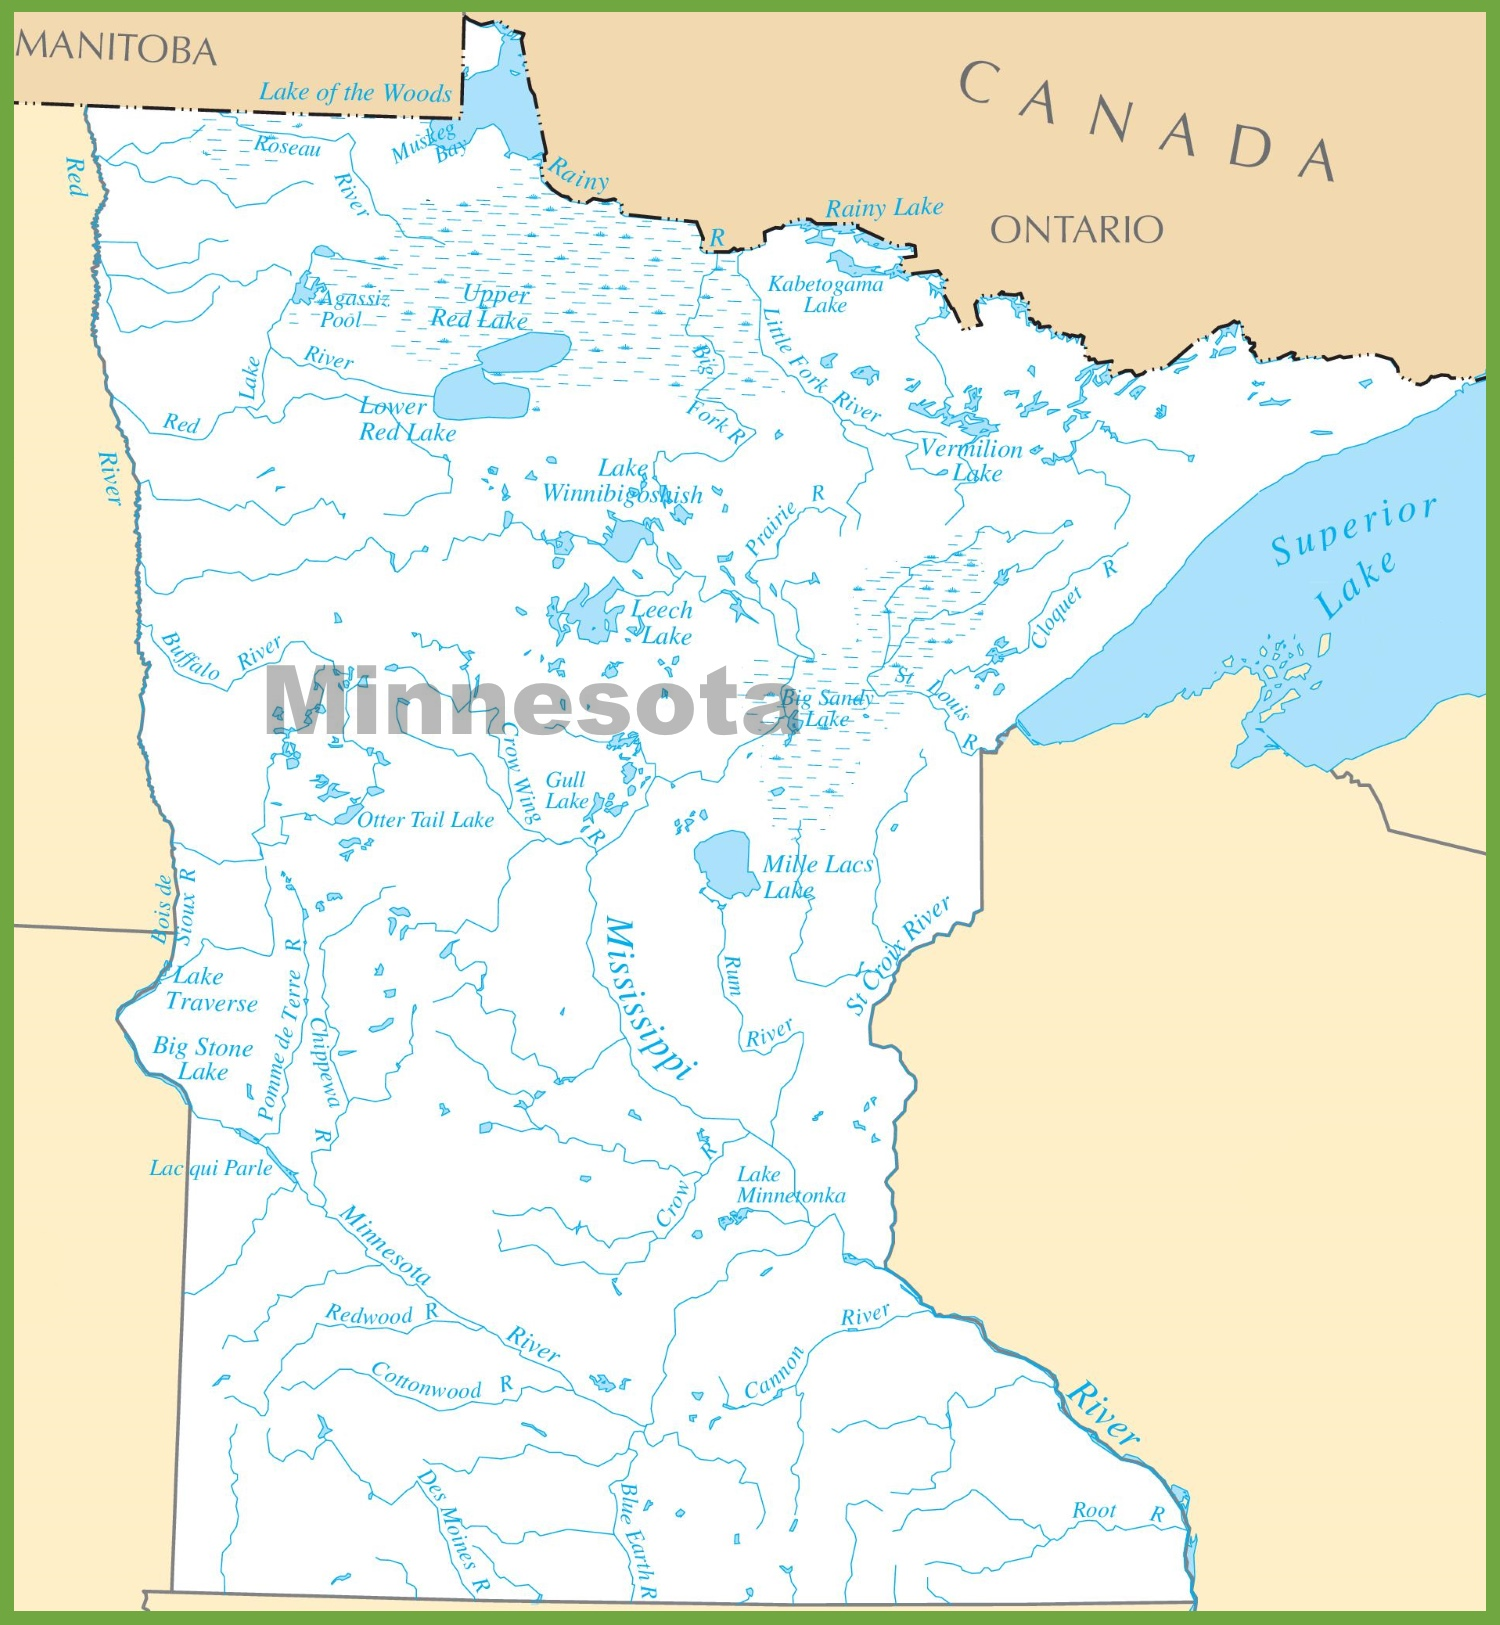 Minnesota Lake Maps Minnesota lakes map Minnesota Lake Maps